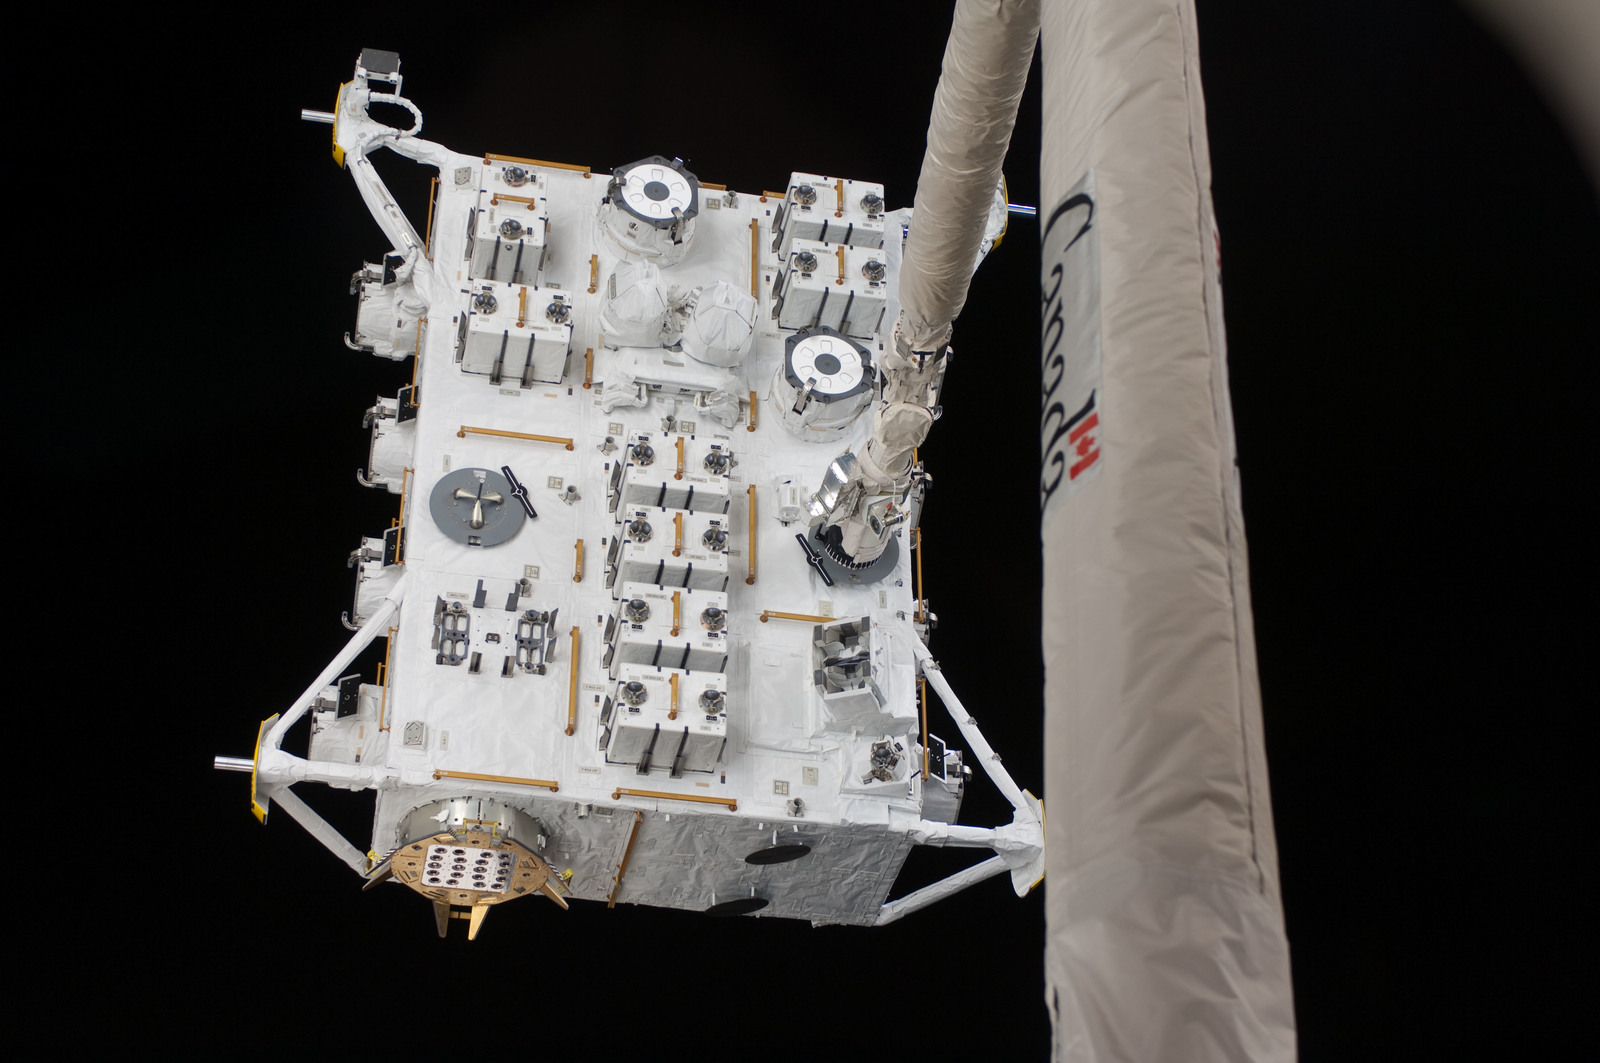 S127E006854 - STS-127 - SRMS moves JEF during EVA-1 on STS-127 / Expedition 20 Joint Operations